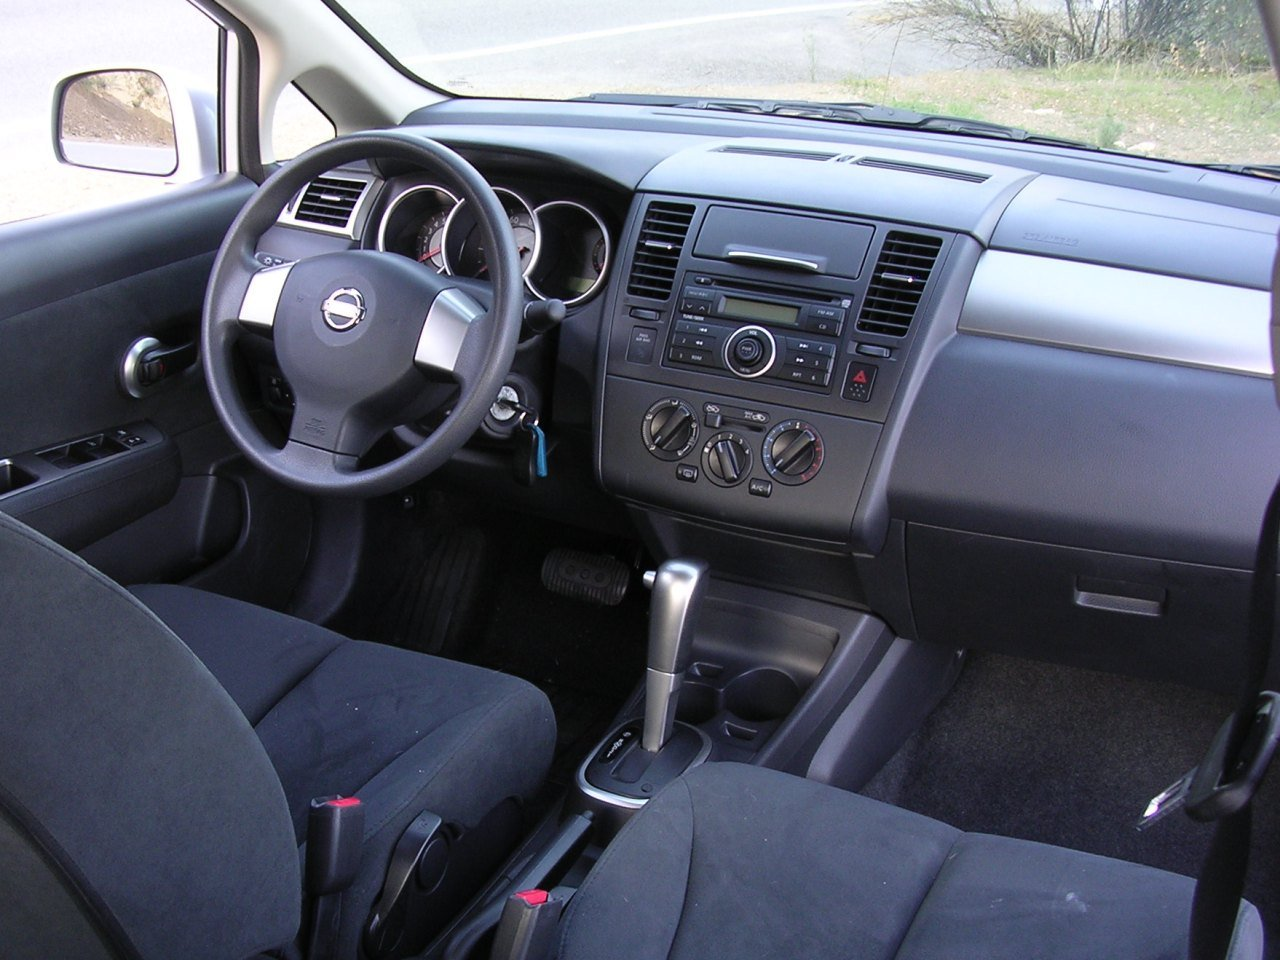 2007 Nissan Versa Information And Photos Zombiedrive Rh Zombdrive Com 2007  Nissan Versa Manual Transmission Review